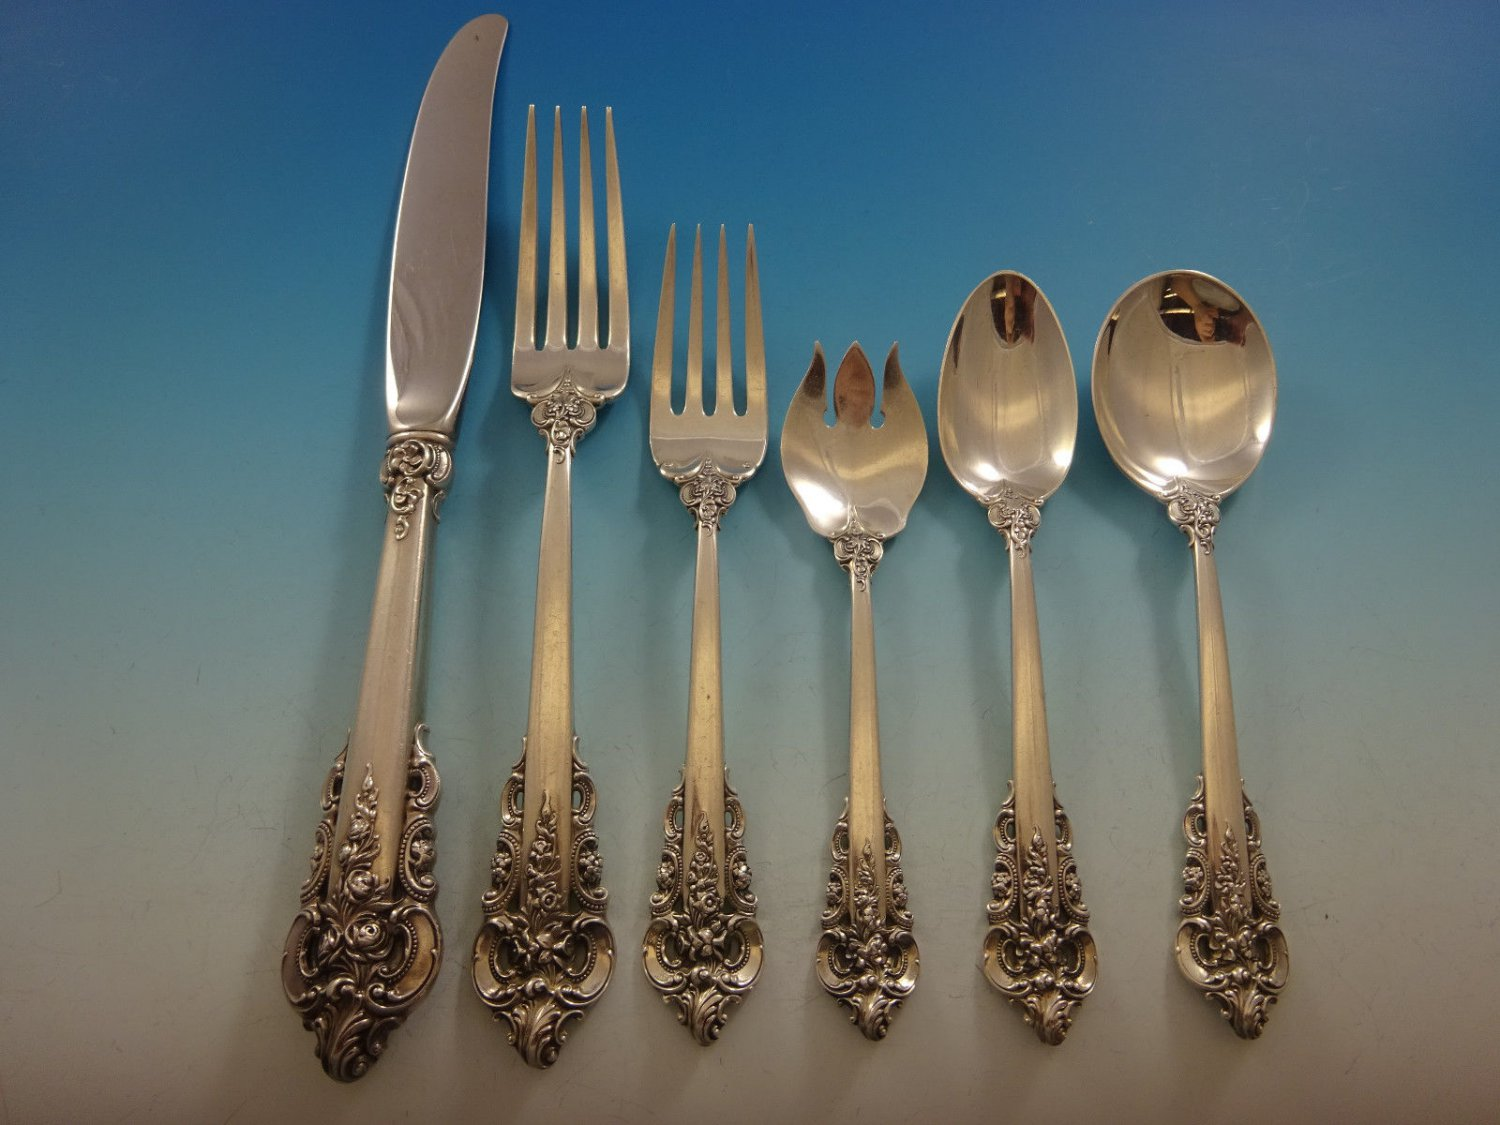 Grande Baroque by Wallace Sterling Silver Flatware Set 8 Service 51 Pcs Dinner